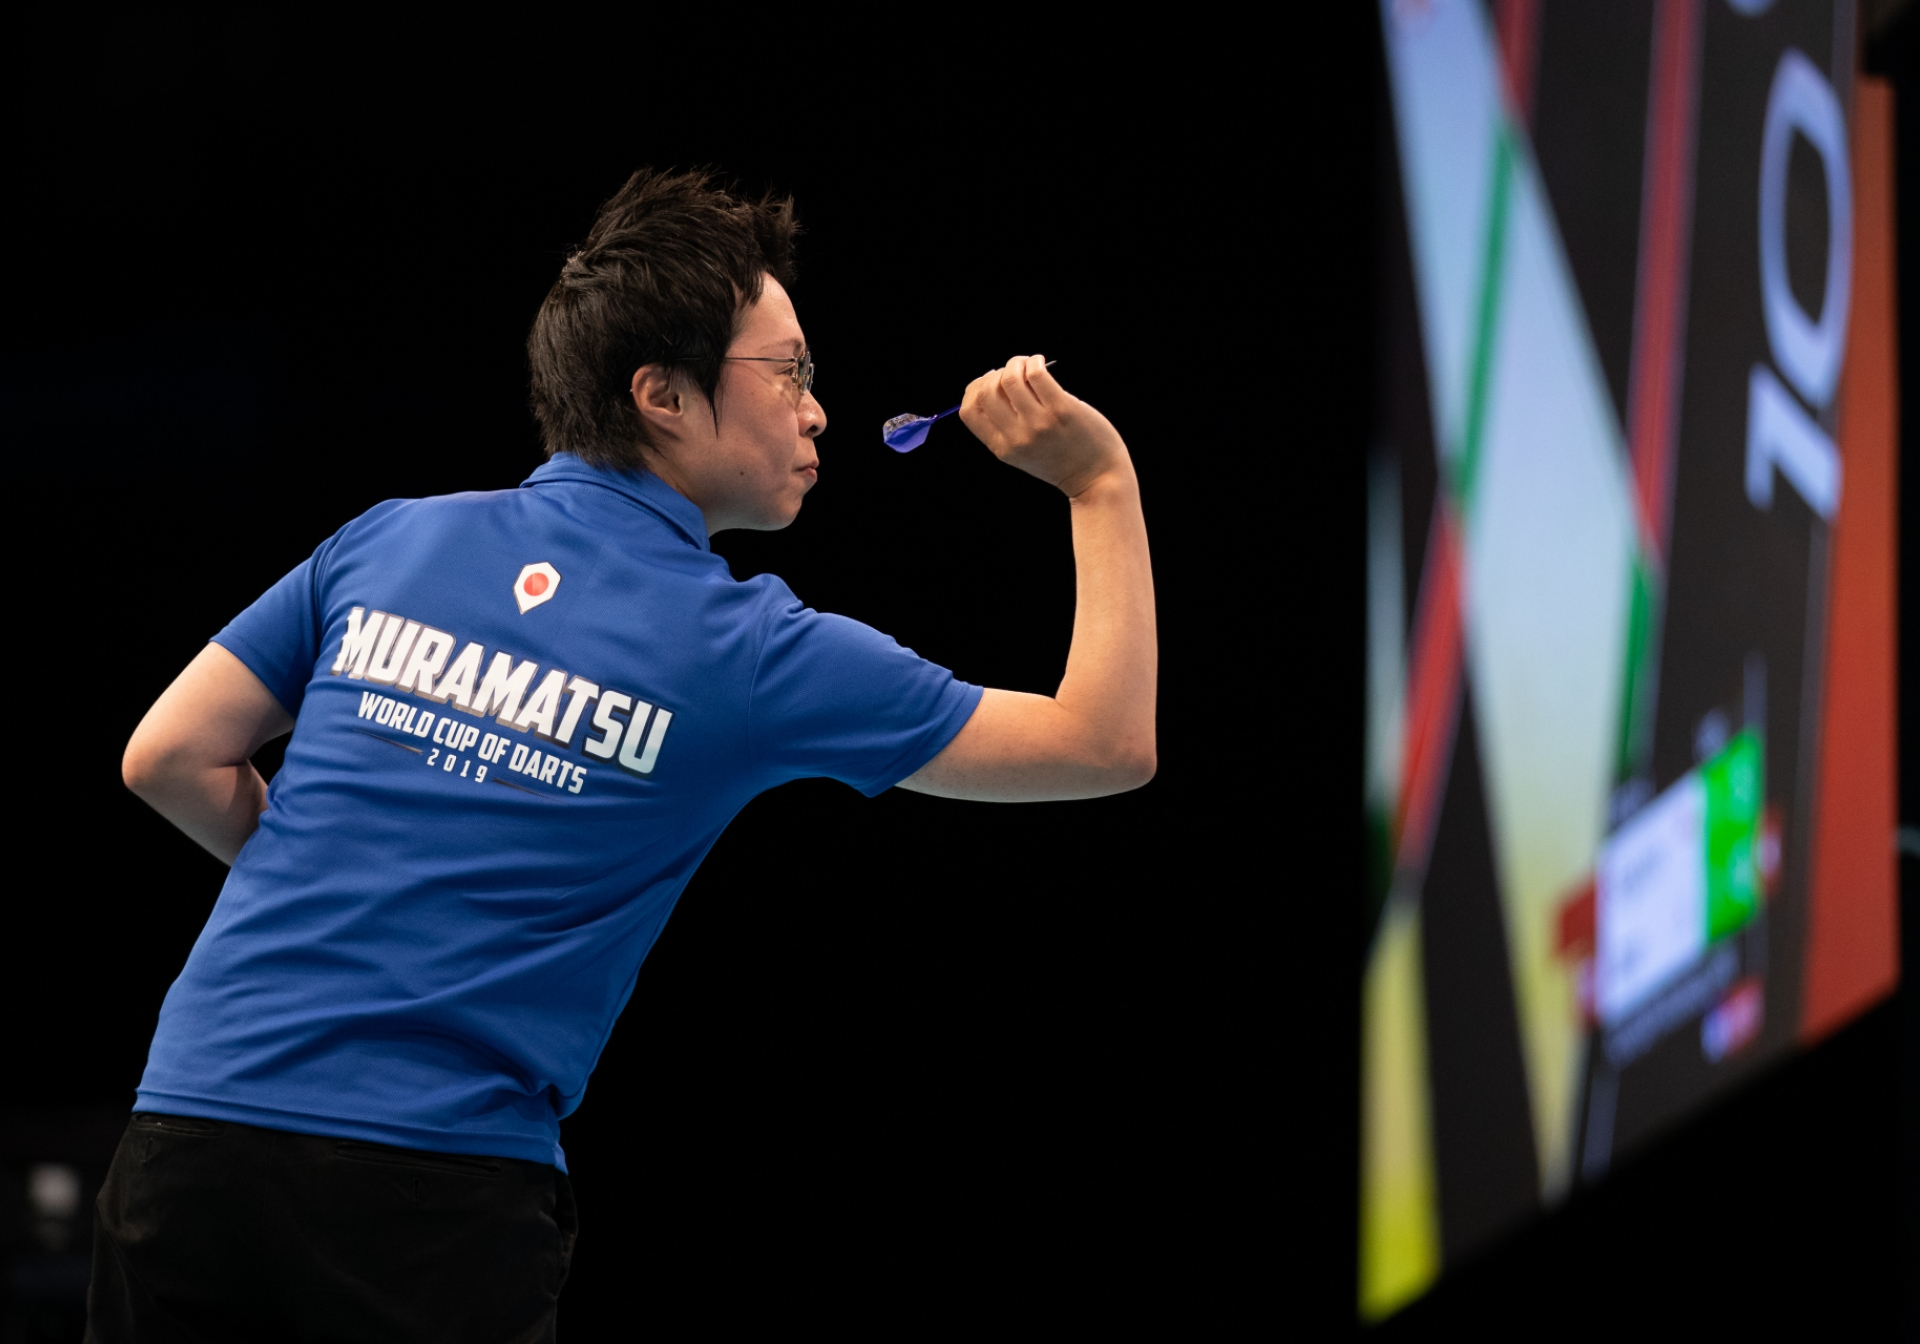 Japan's Haruki Muramatsu - BetVictor World Cup of Darts (Stefan Strassenberg)